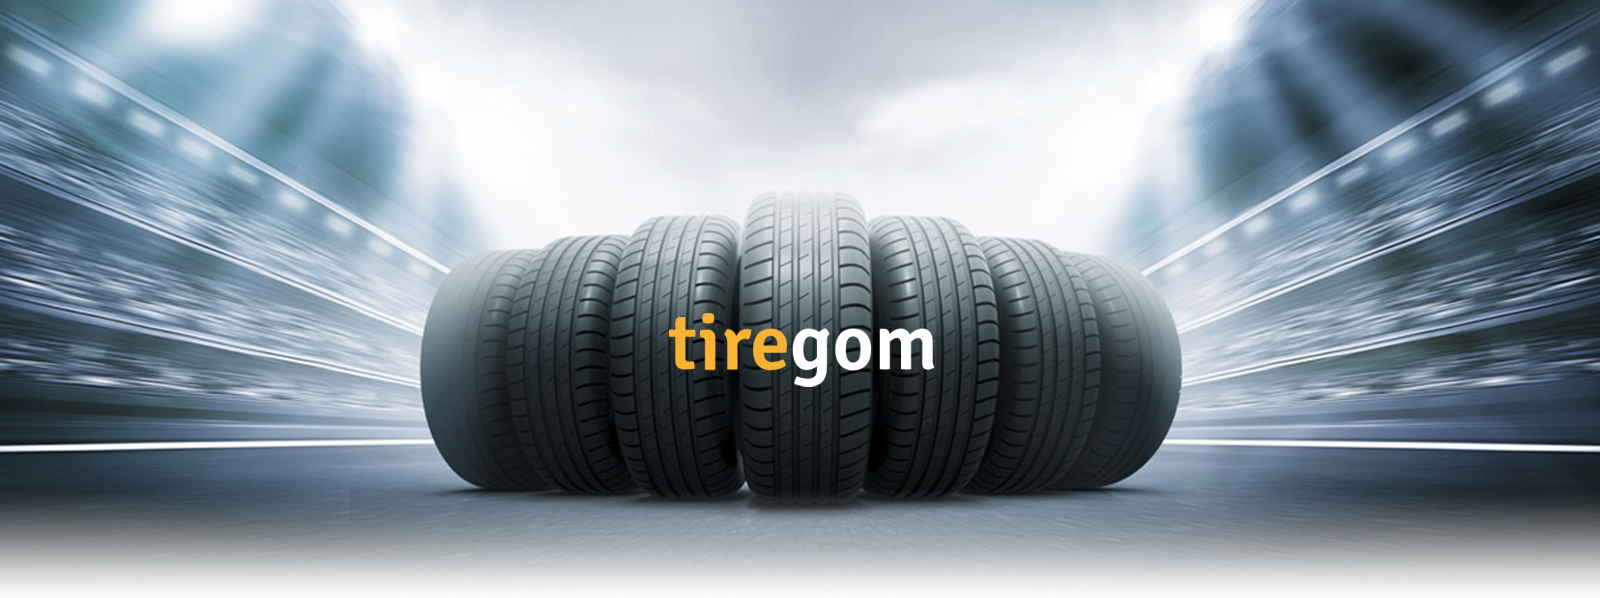 Tiregom.us : Tire Comparison Tool